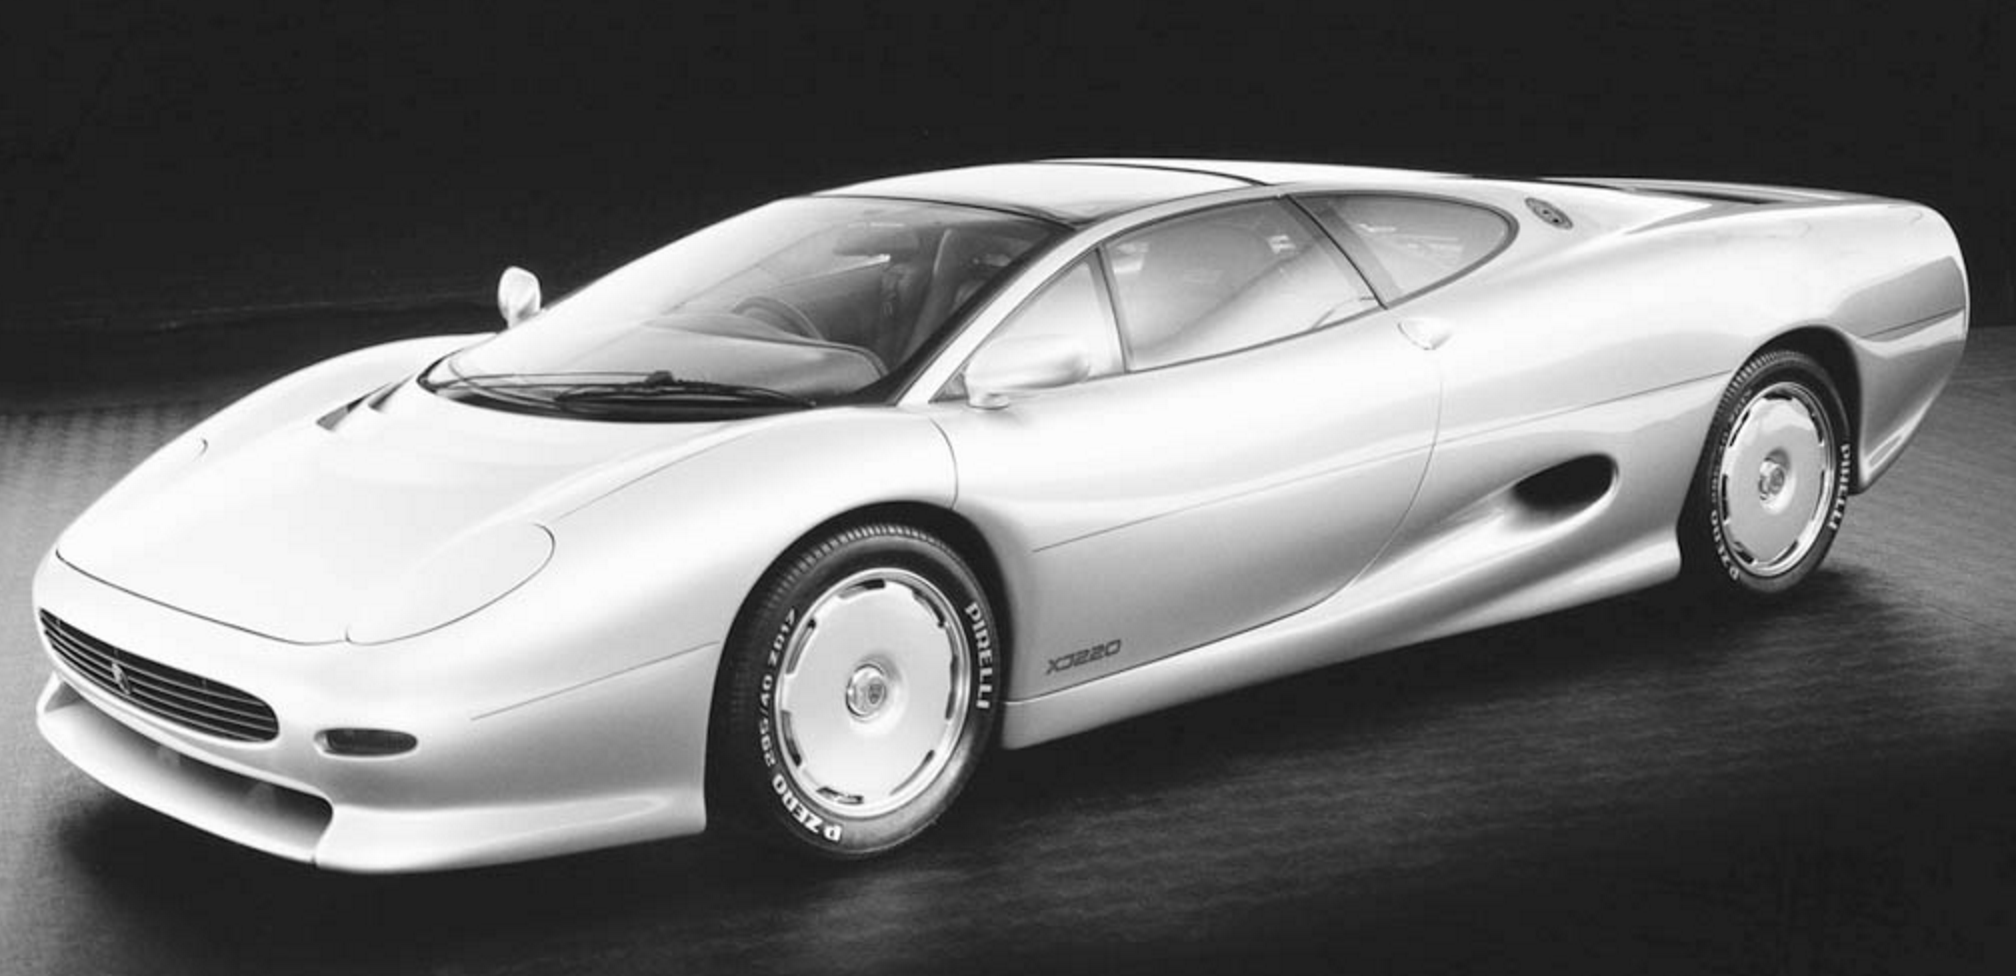 Awesome 1988 Jaguar XJ220 Prototype